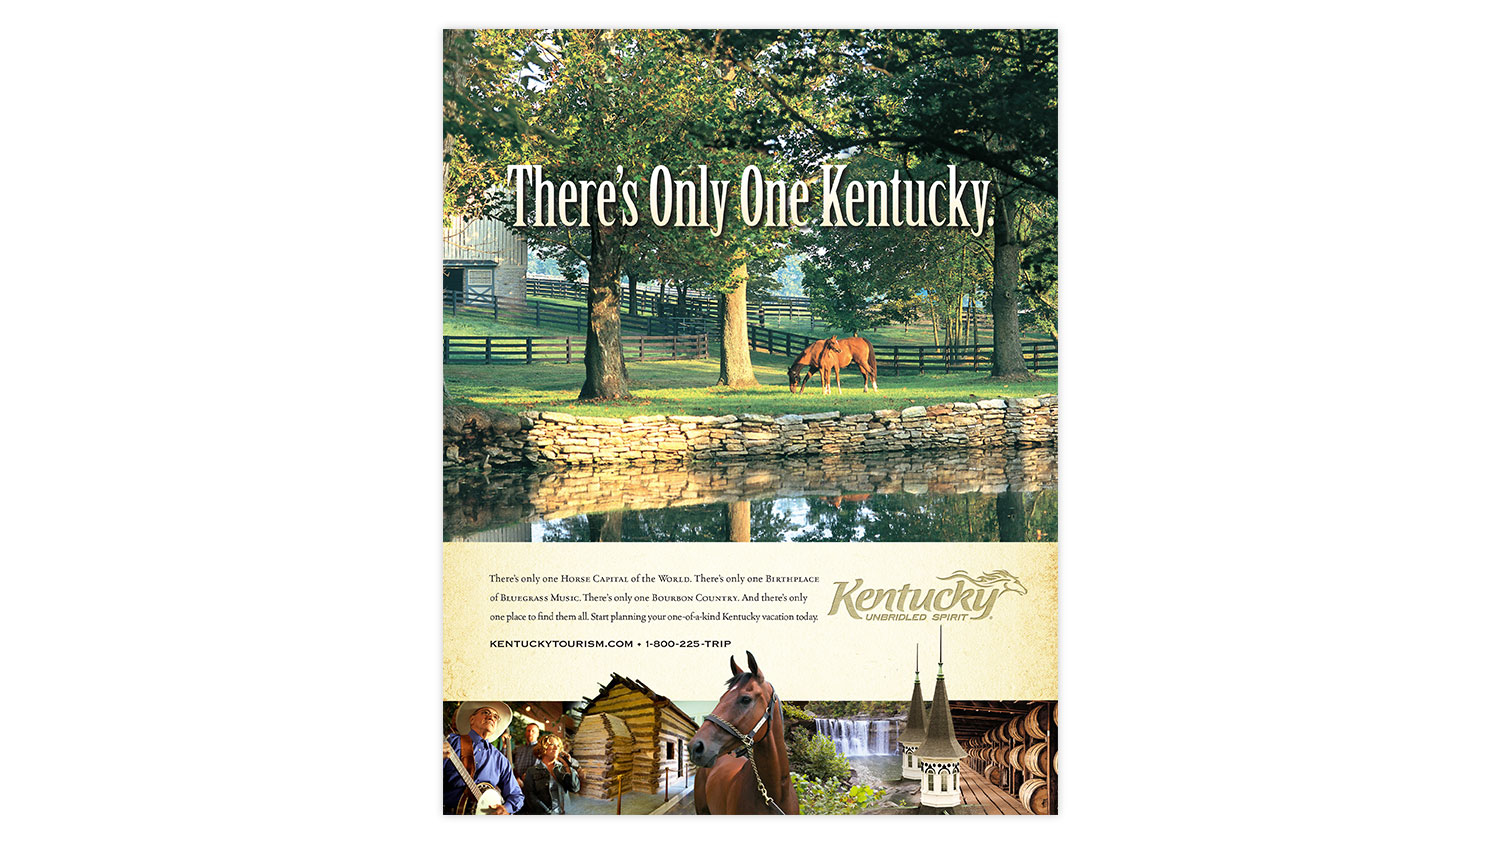 Kentucky Tourism There's Only One